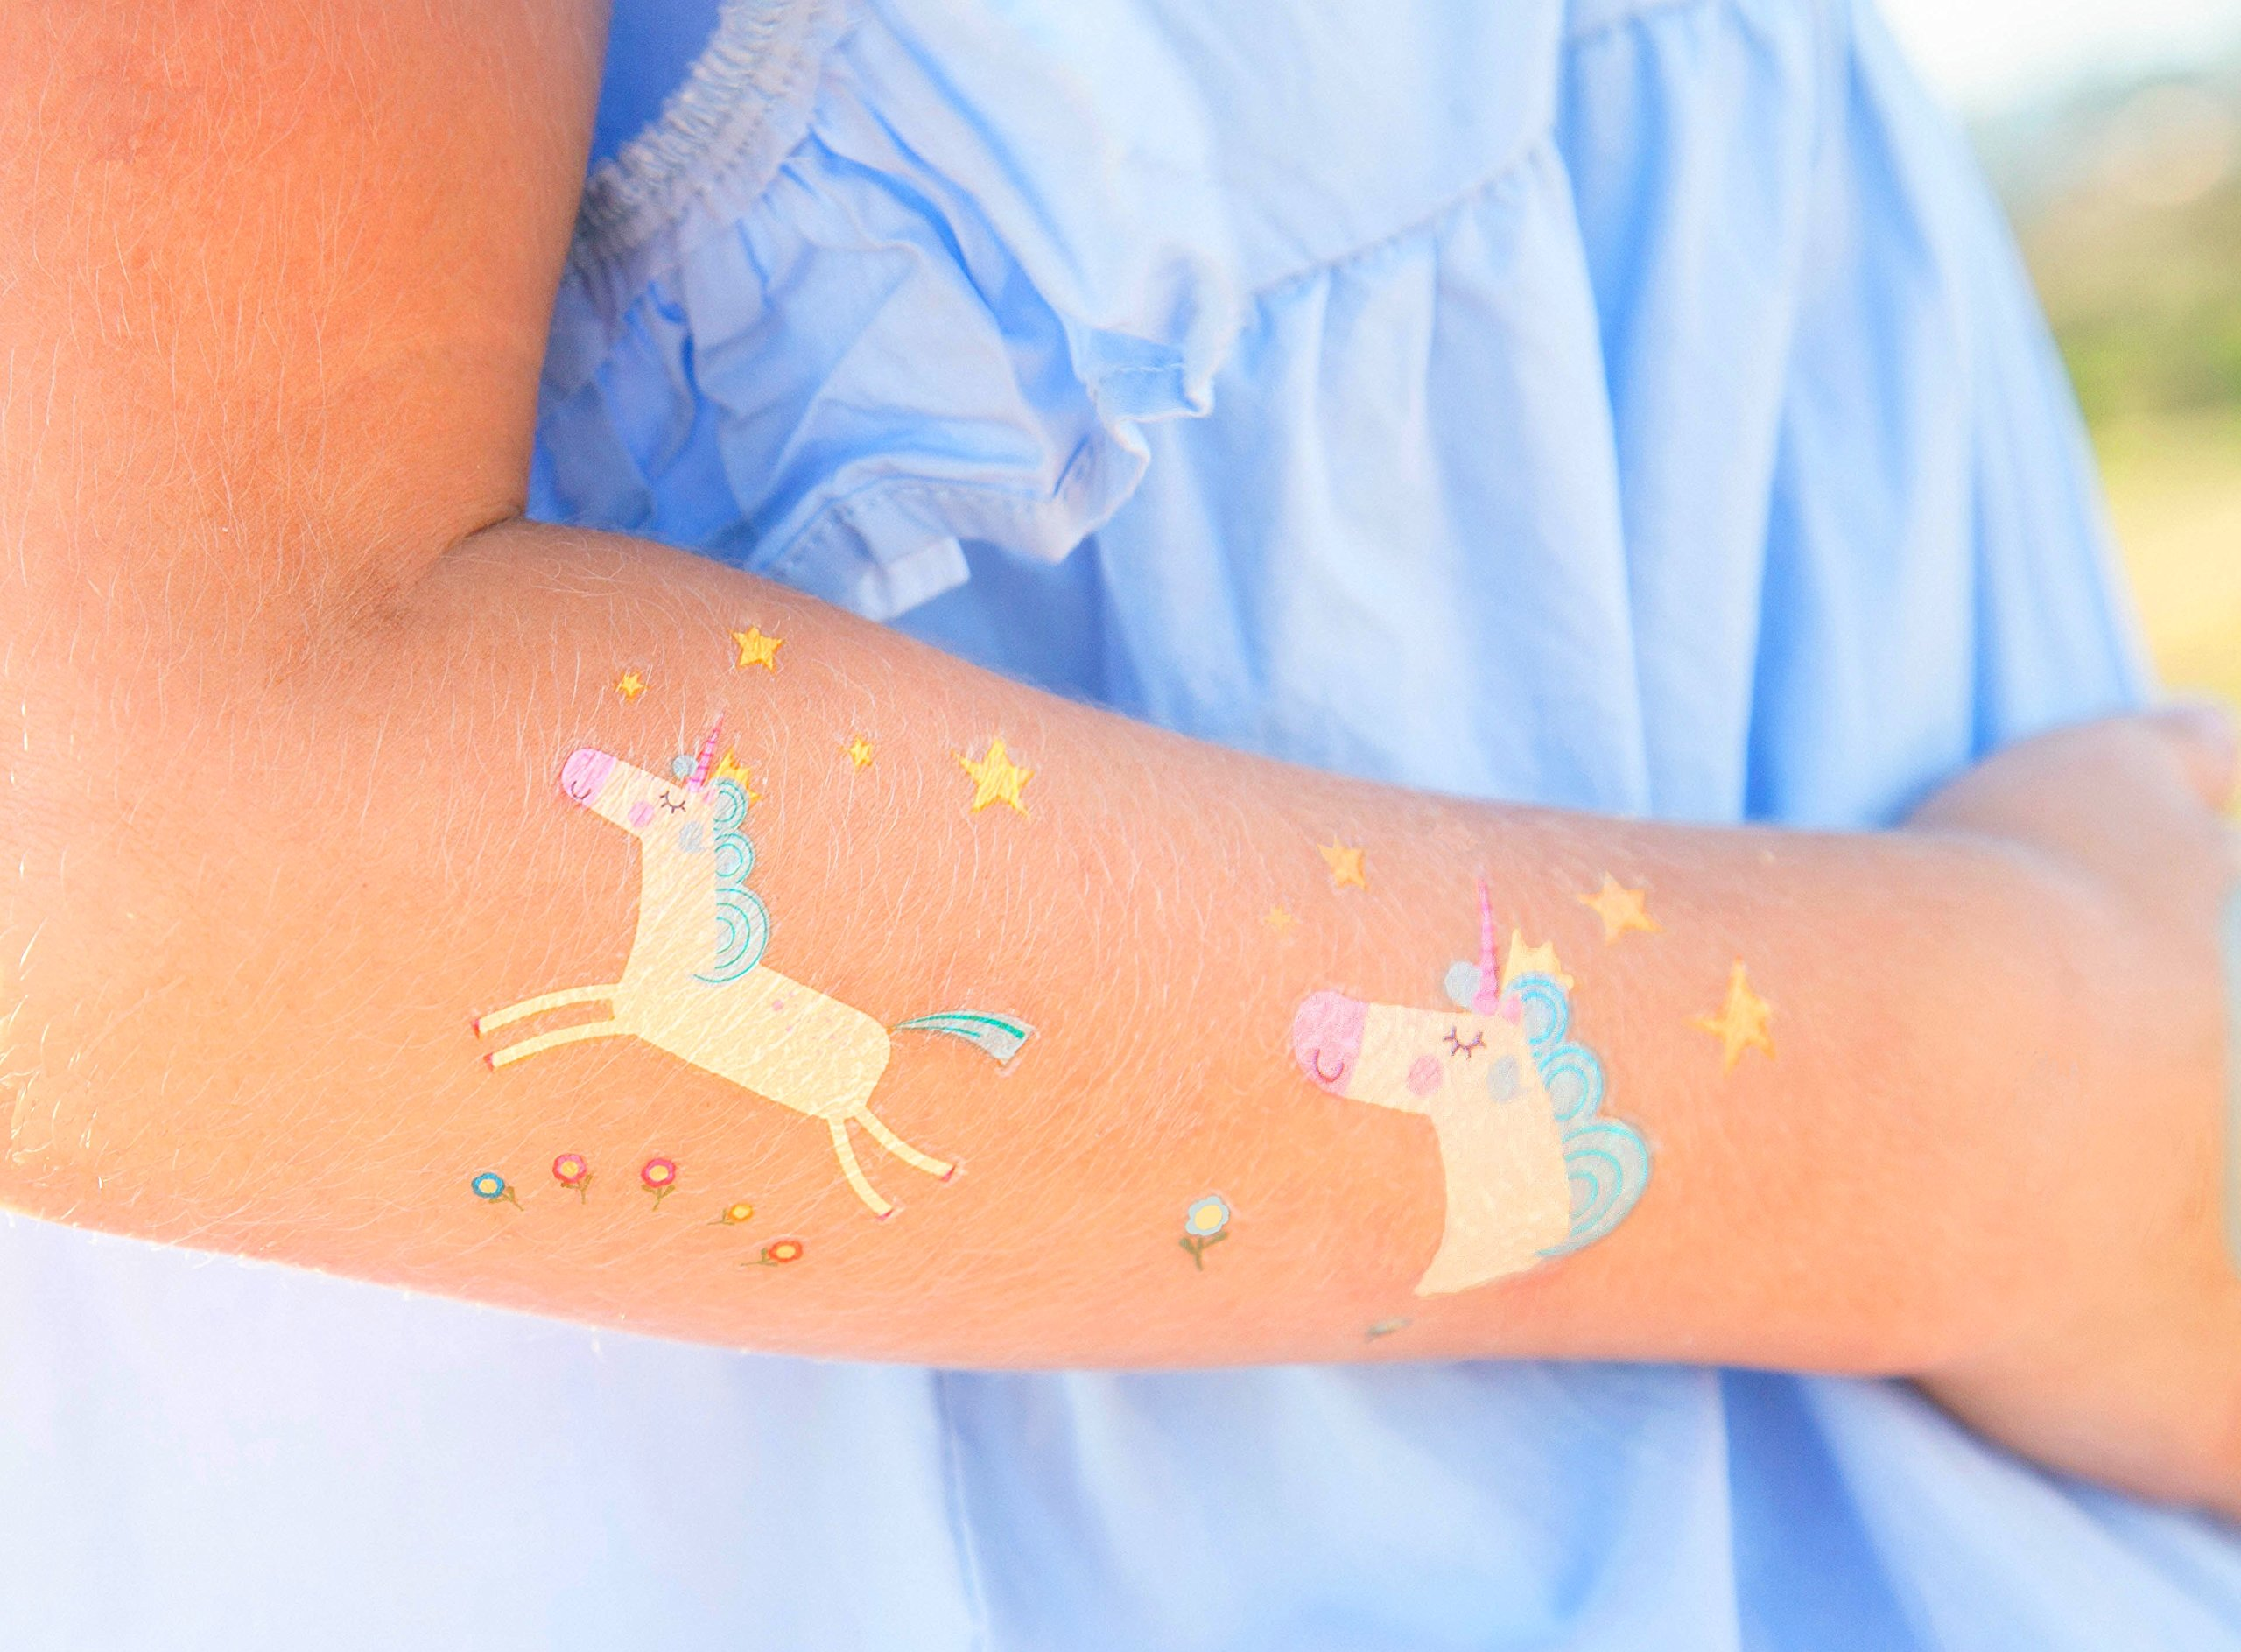 Unicorn Temporary Tattoos for Kids - Unicorn Party Favors, Birthday Decorations and Supplies - Non-toxic and Waterproof - Pack of 16 sheets (32 Fake Tattoos) 9